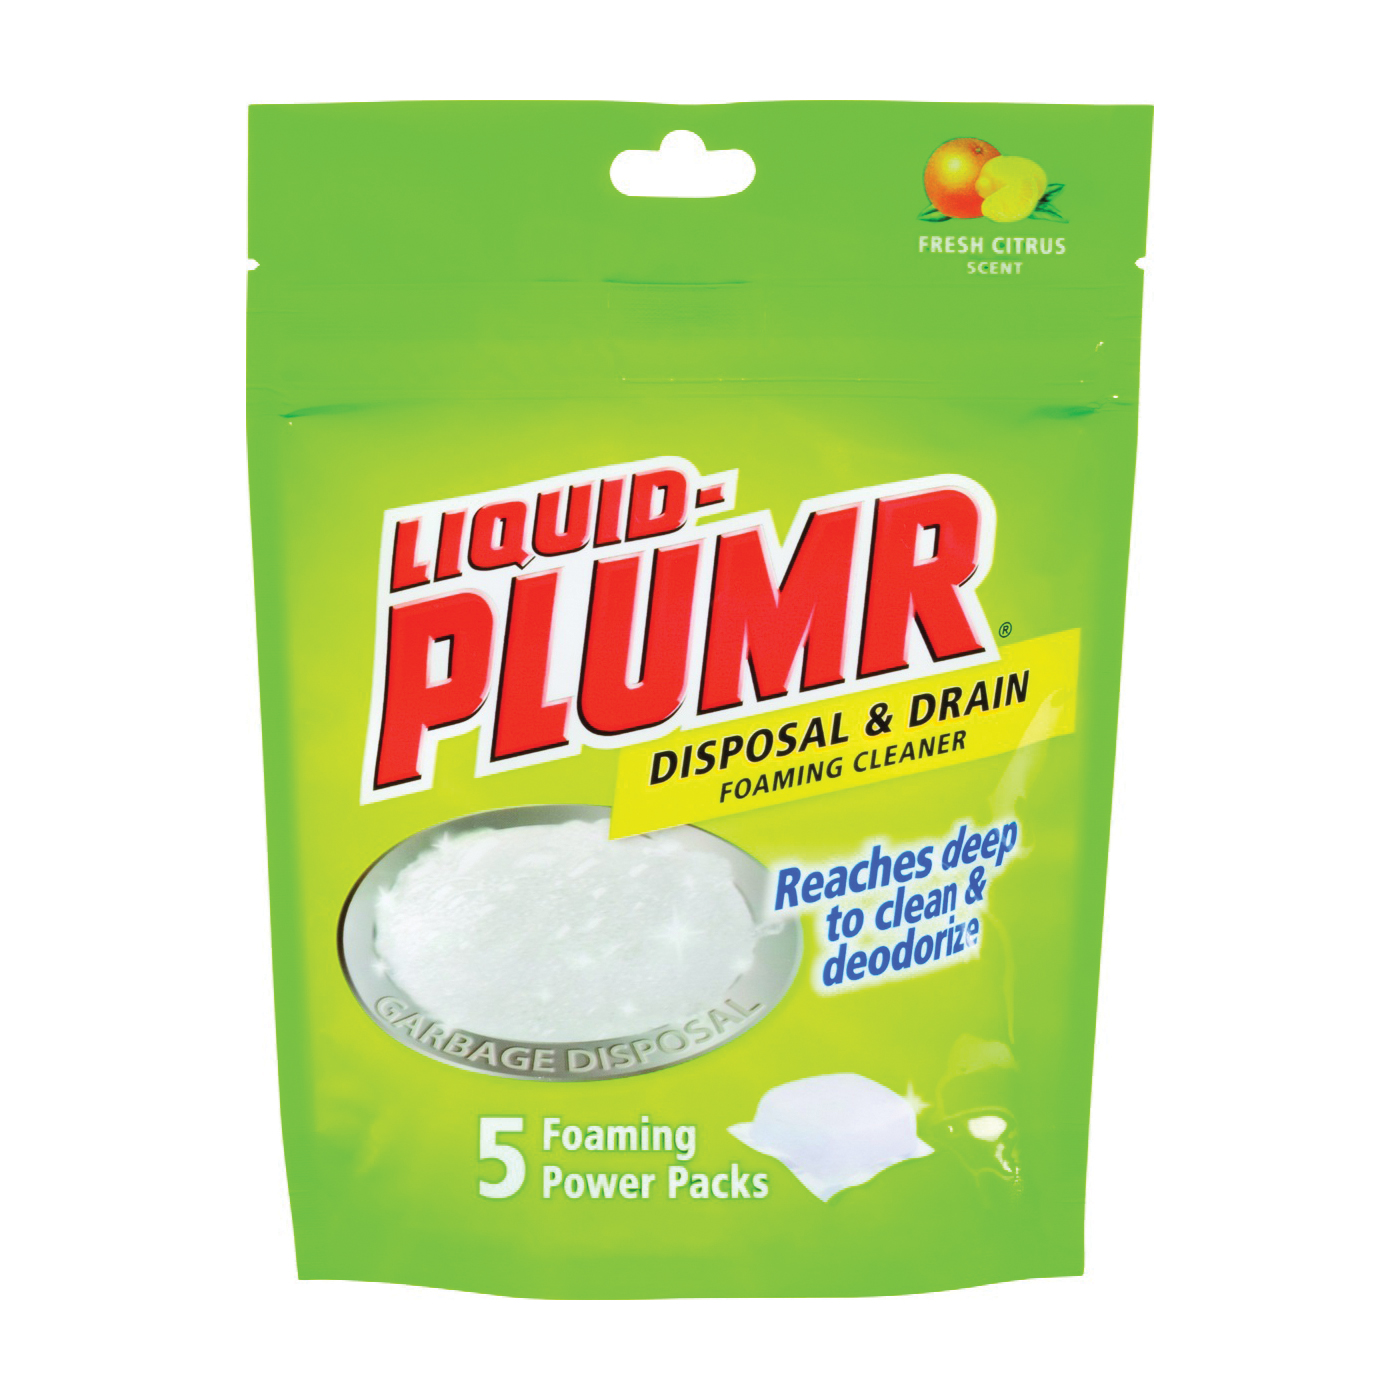 Picture of Liquid-Plumr 30717 Disposal and Drain Cleaner Pouch, Pouch, Granular, Citrus, Grapefruit, White